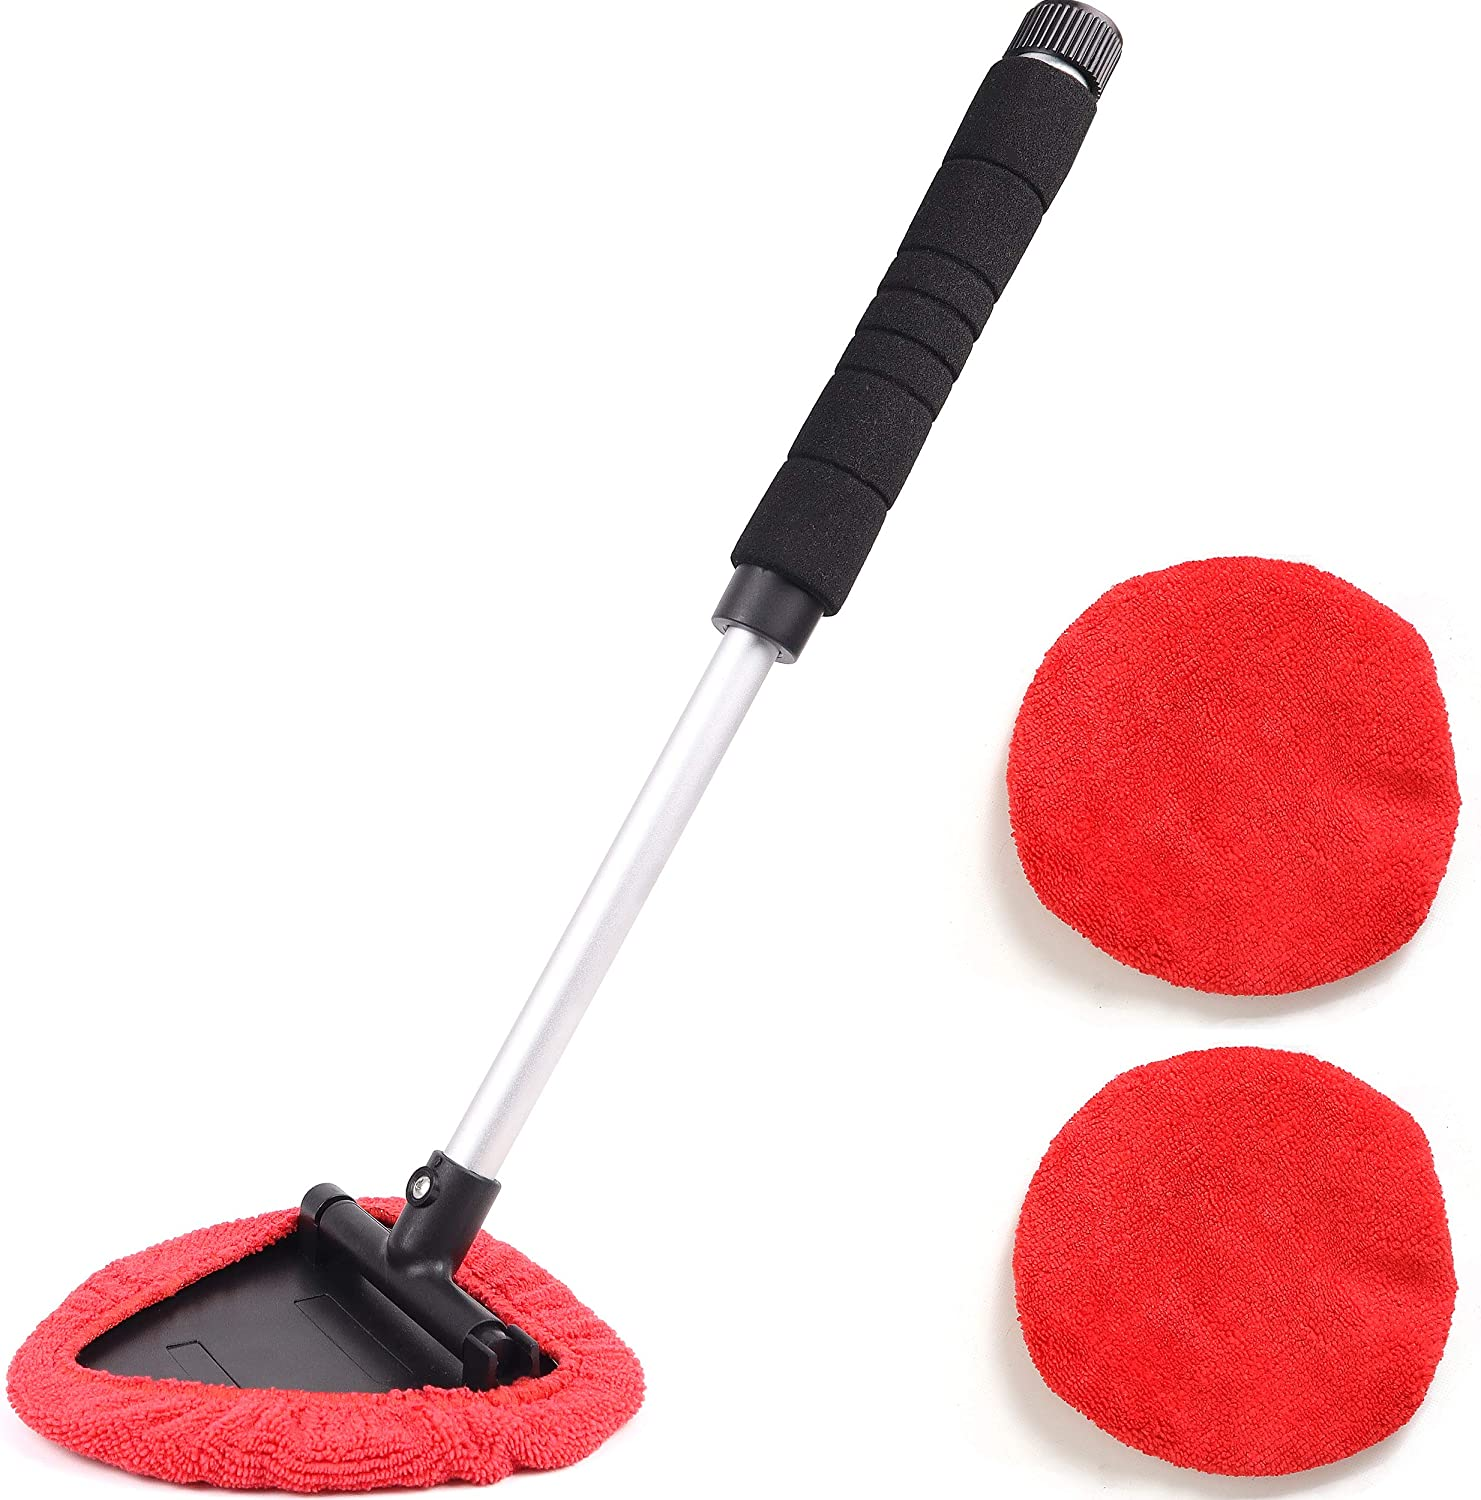 Car Window Cleaner Wipes Interior Exterior Cleaning Brush with Extendable Handle 180/° Swiveled Triangular Head Microfiber Cloth Cleaning Wand Teancll Windshield Cleaning Tool